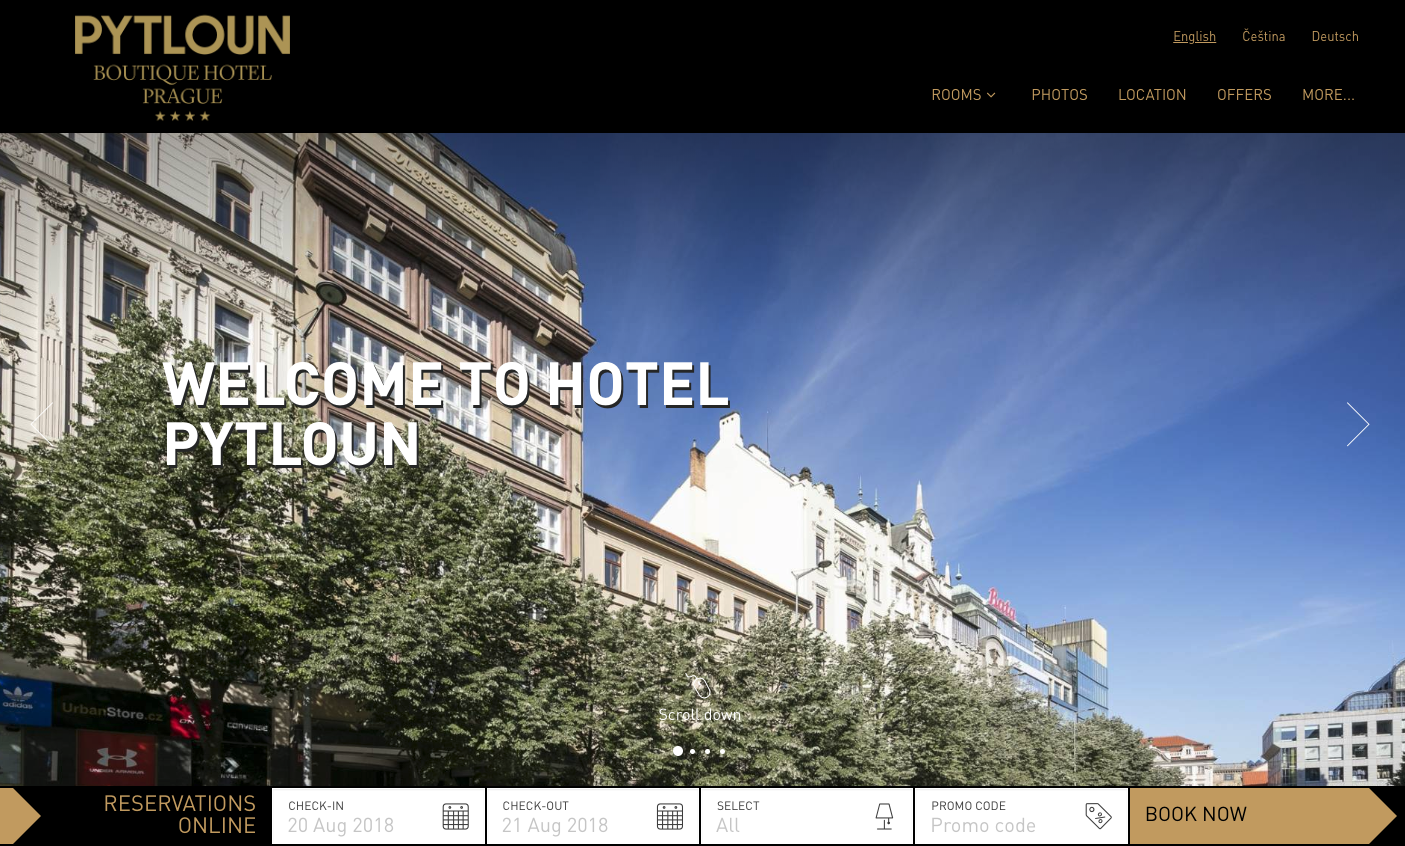 Pytloun Boutique Hotel Prague